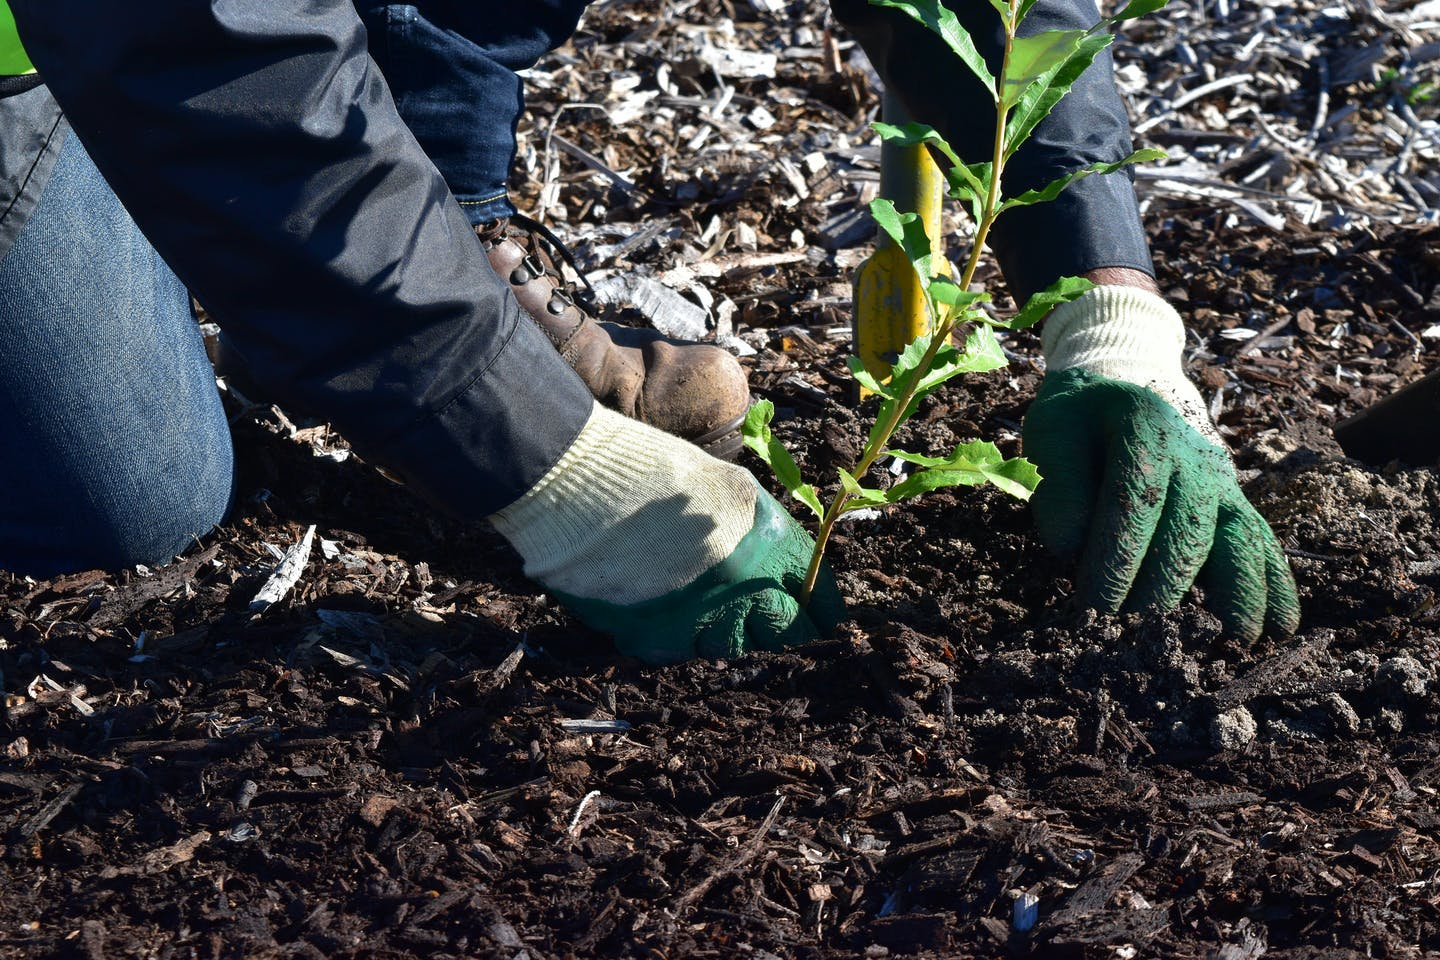 Hands plant a tree